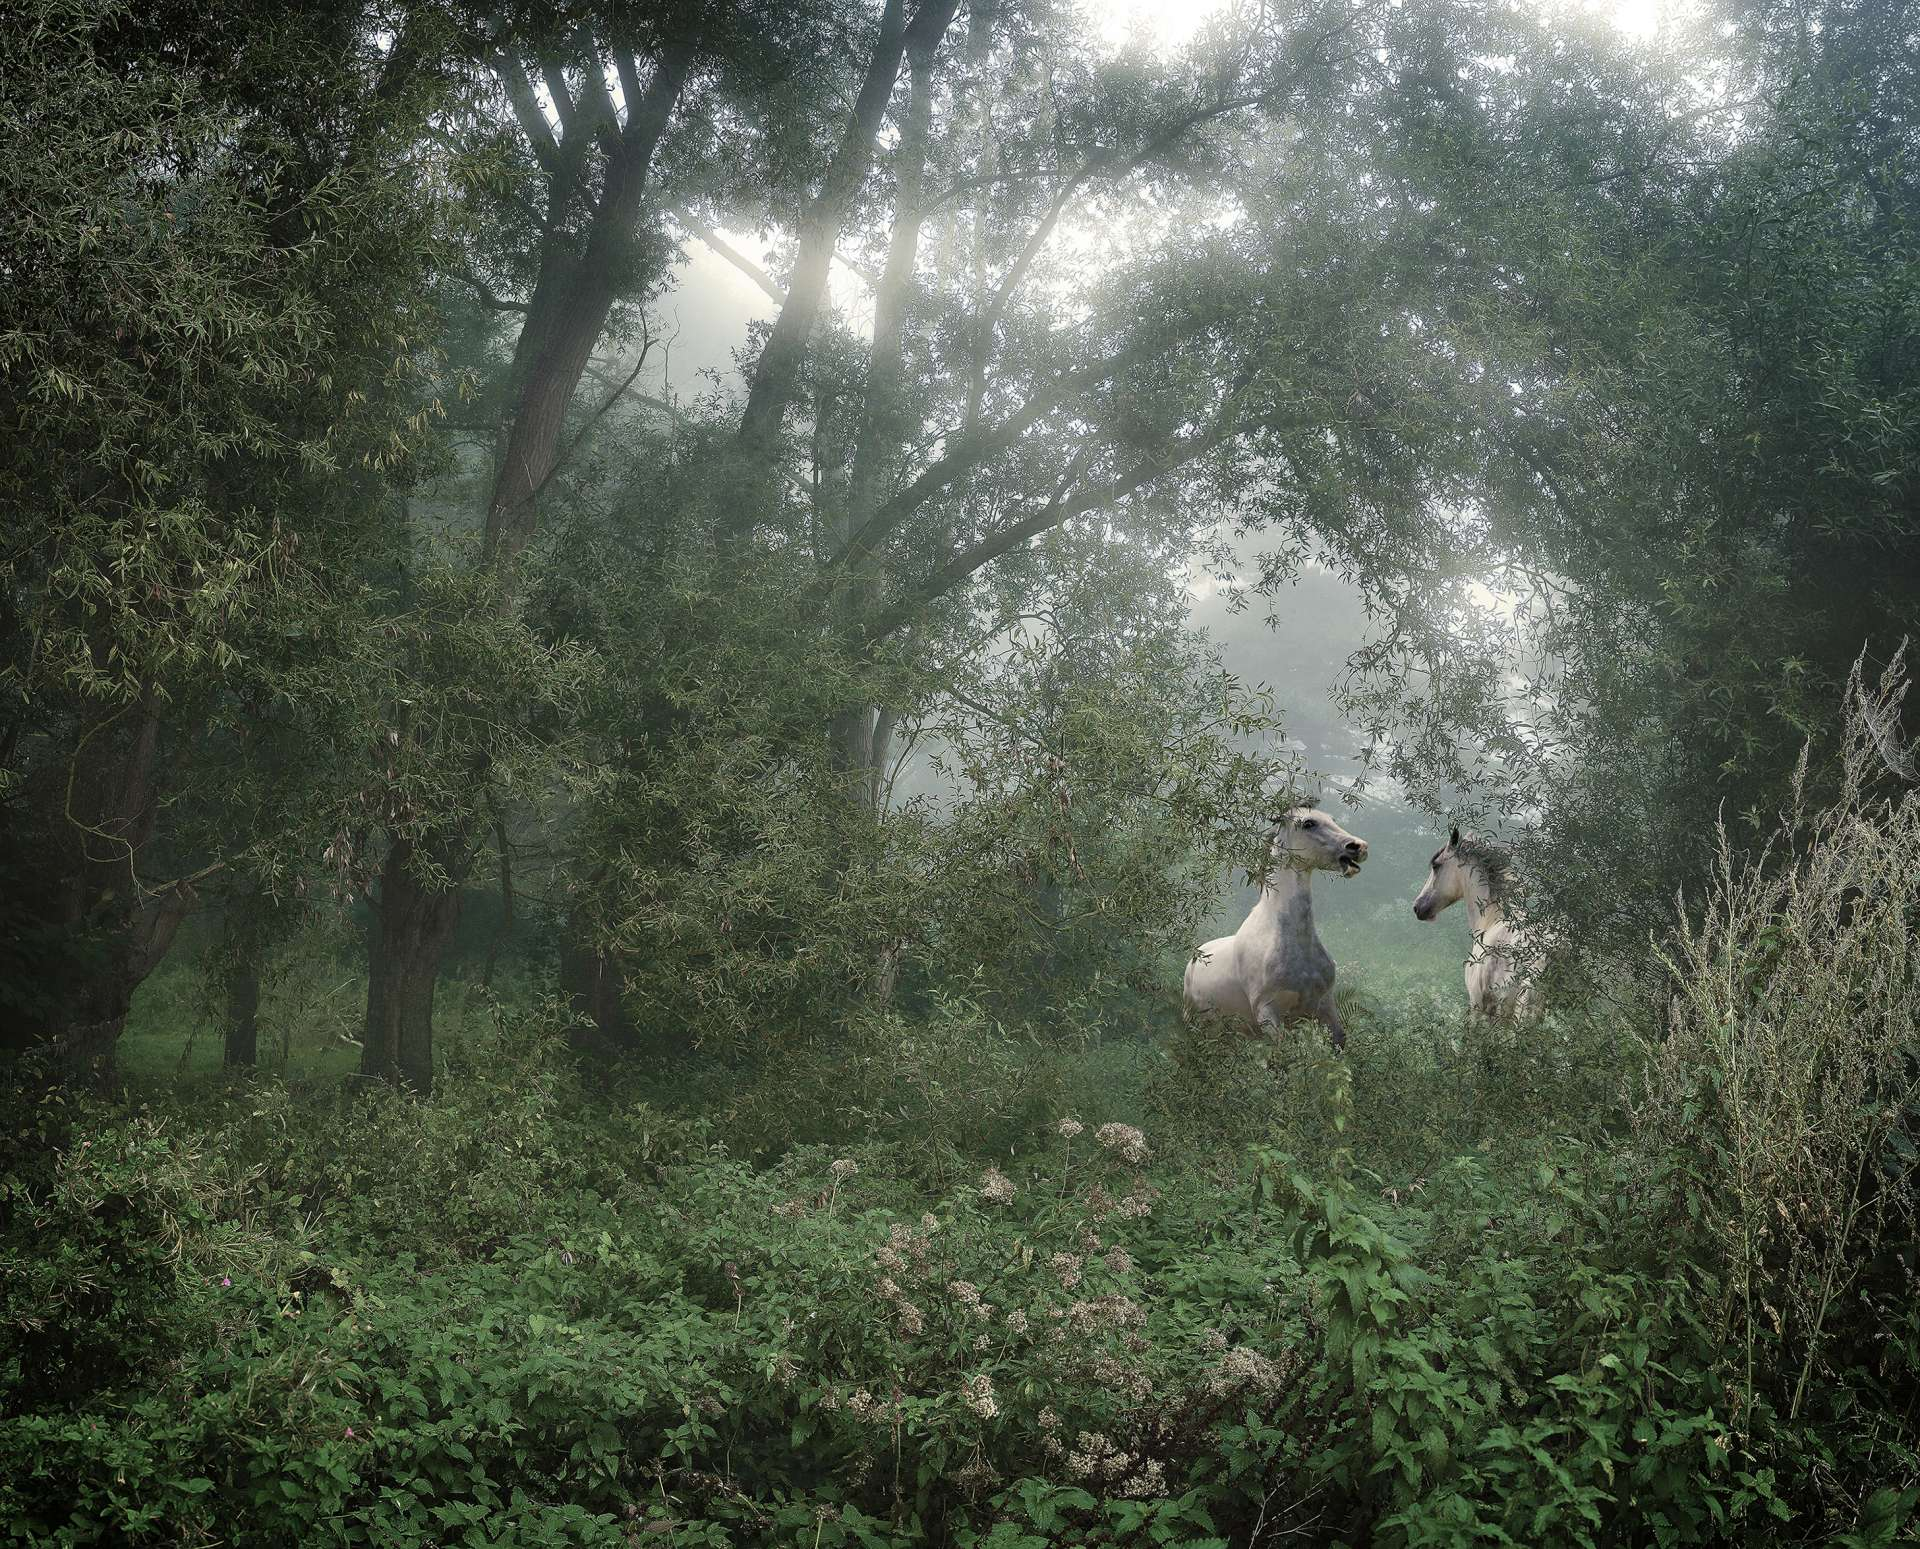 Horses in the mist. | Landscape | Koen De Muynck